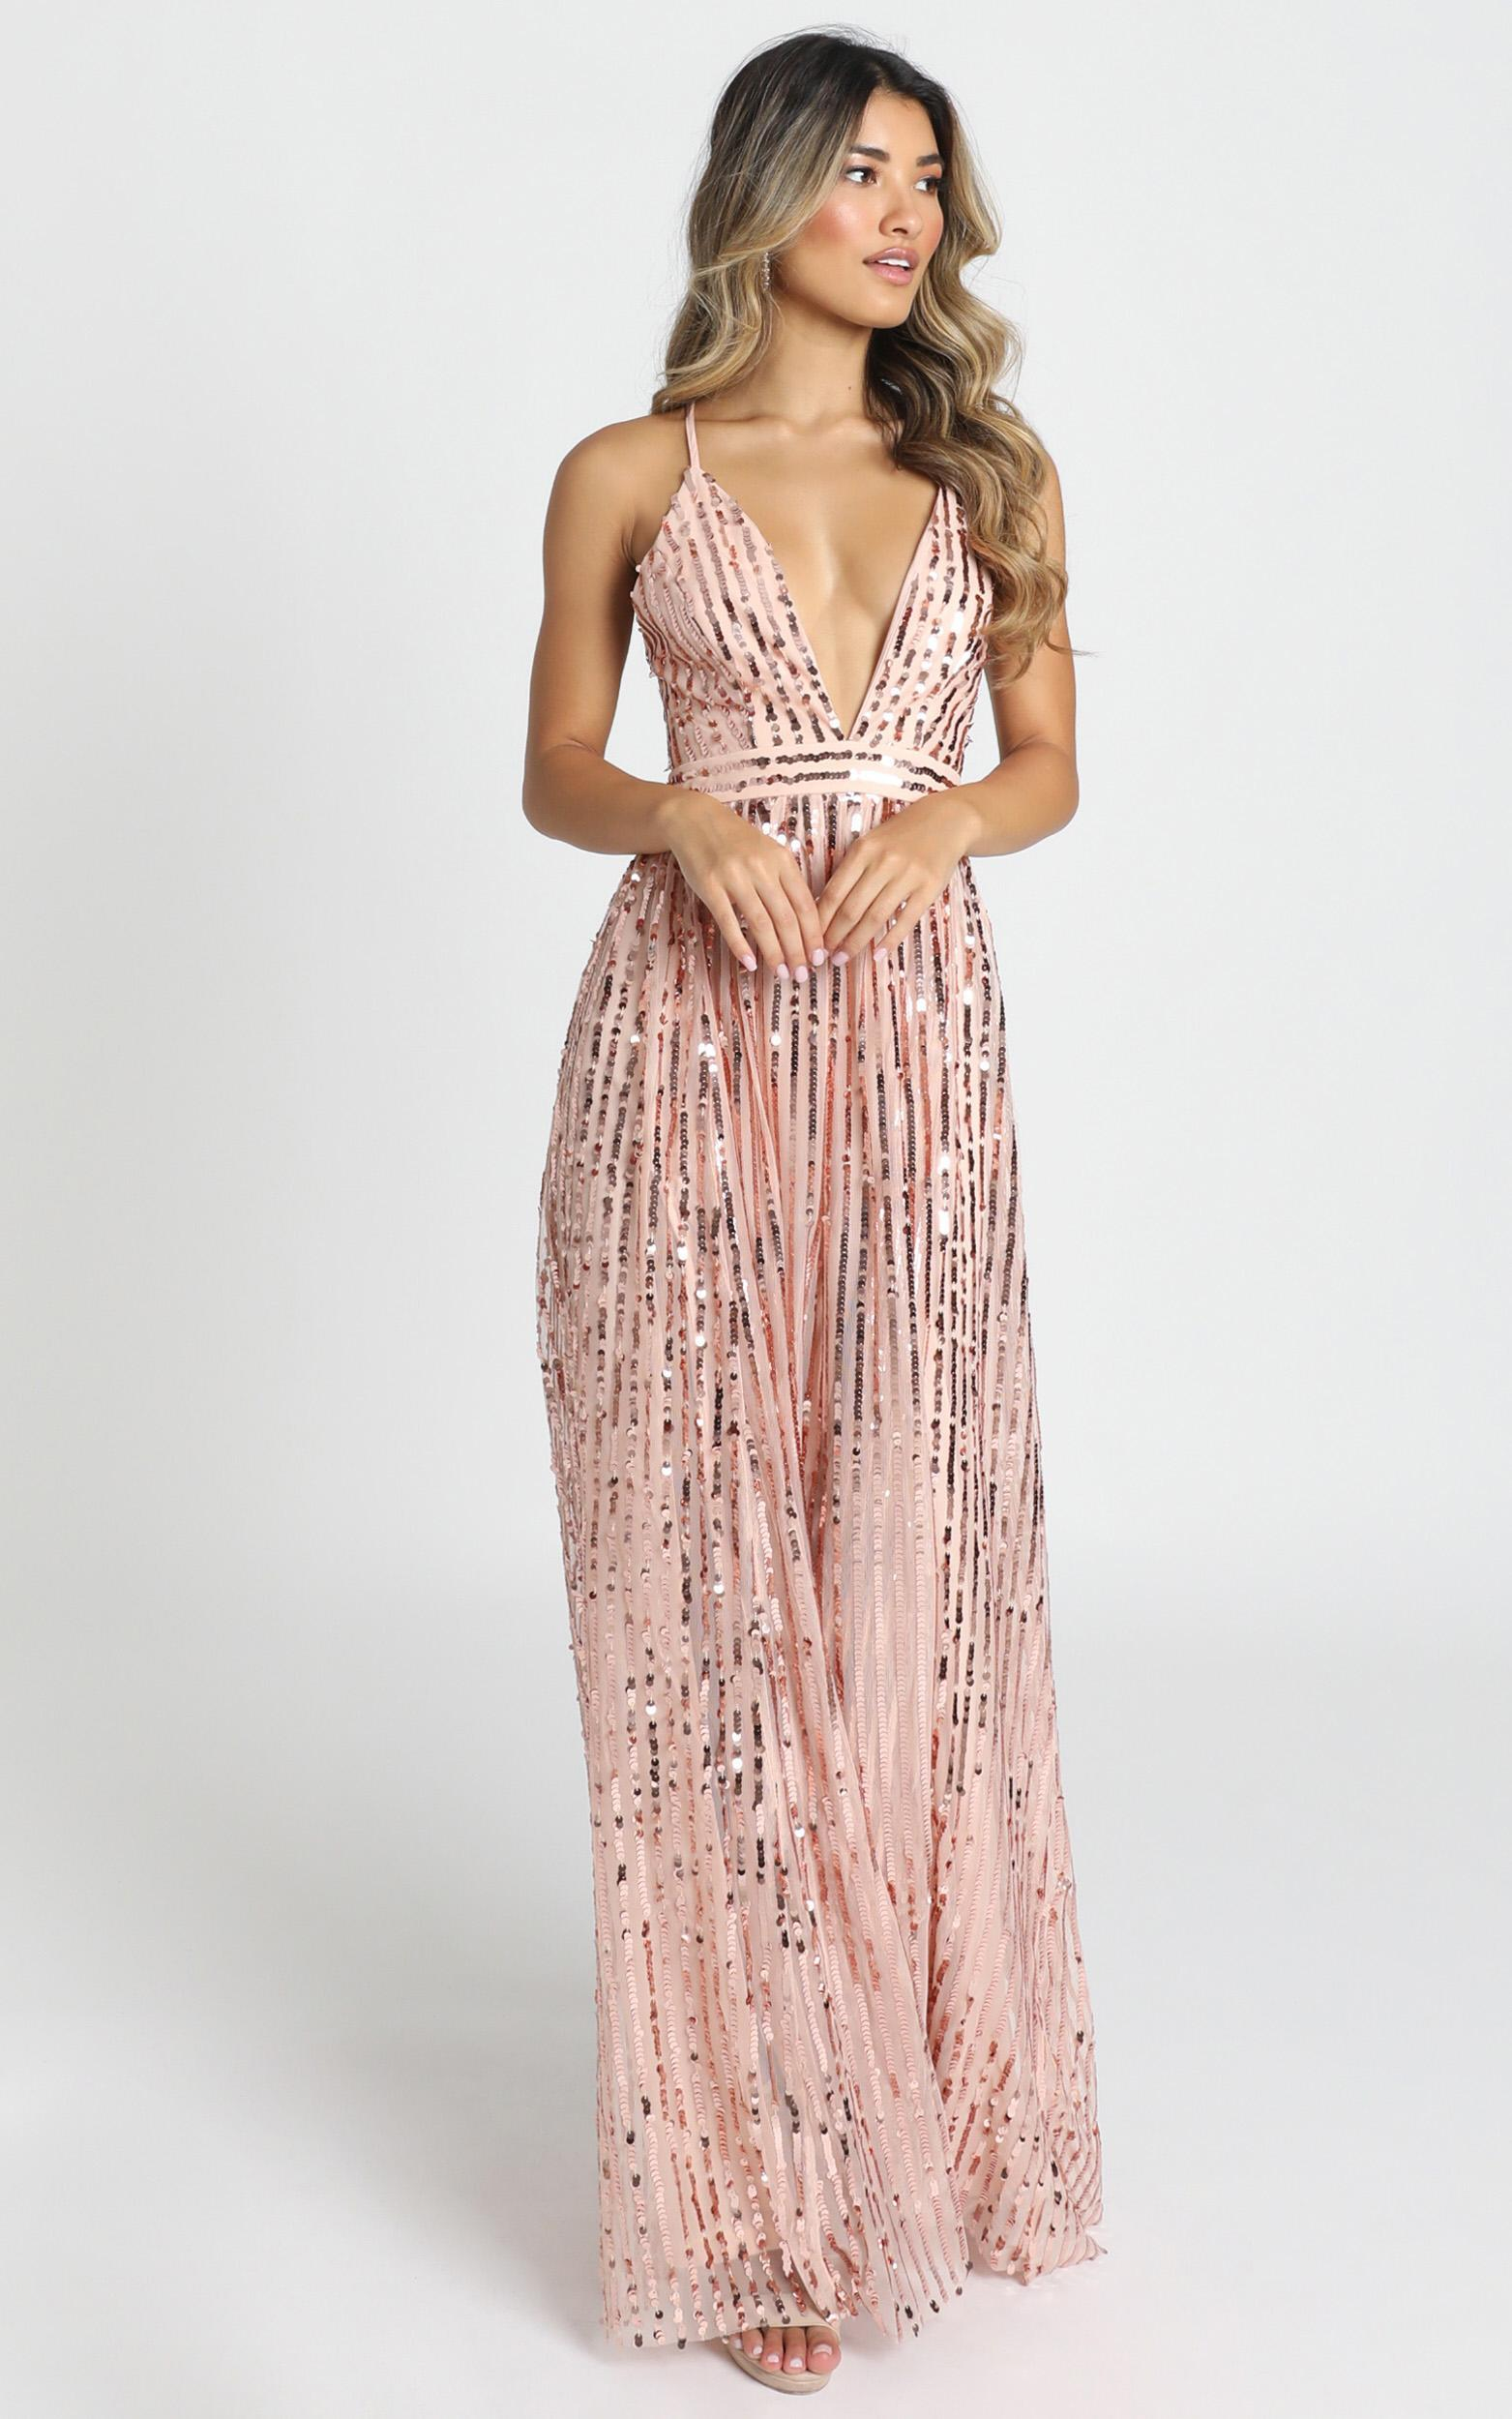 Youre The One Maxi Dress in rose gold sequin- 12 (L), Rose Gold, hi-res image number null